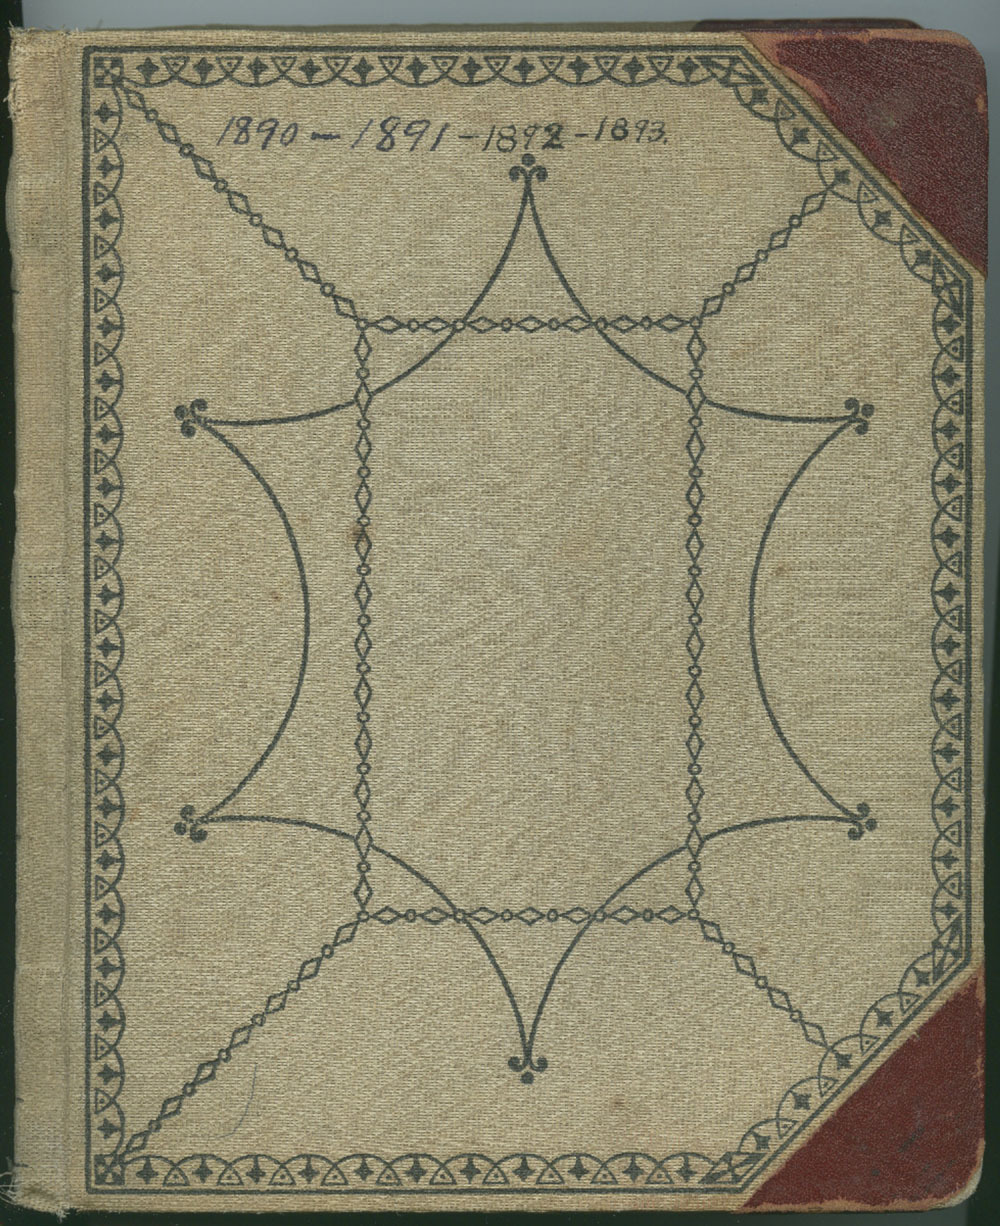 Martha Farnsworth diary - Front cover